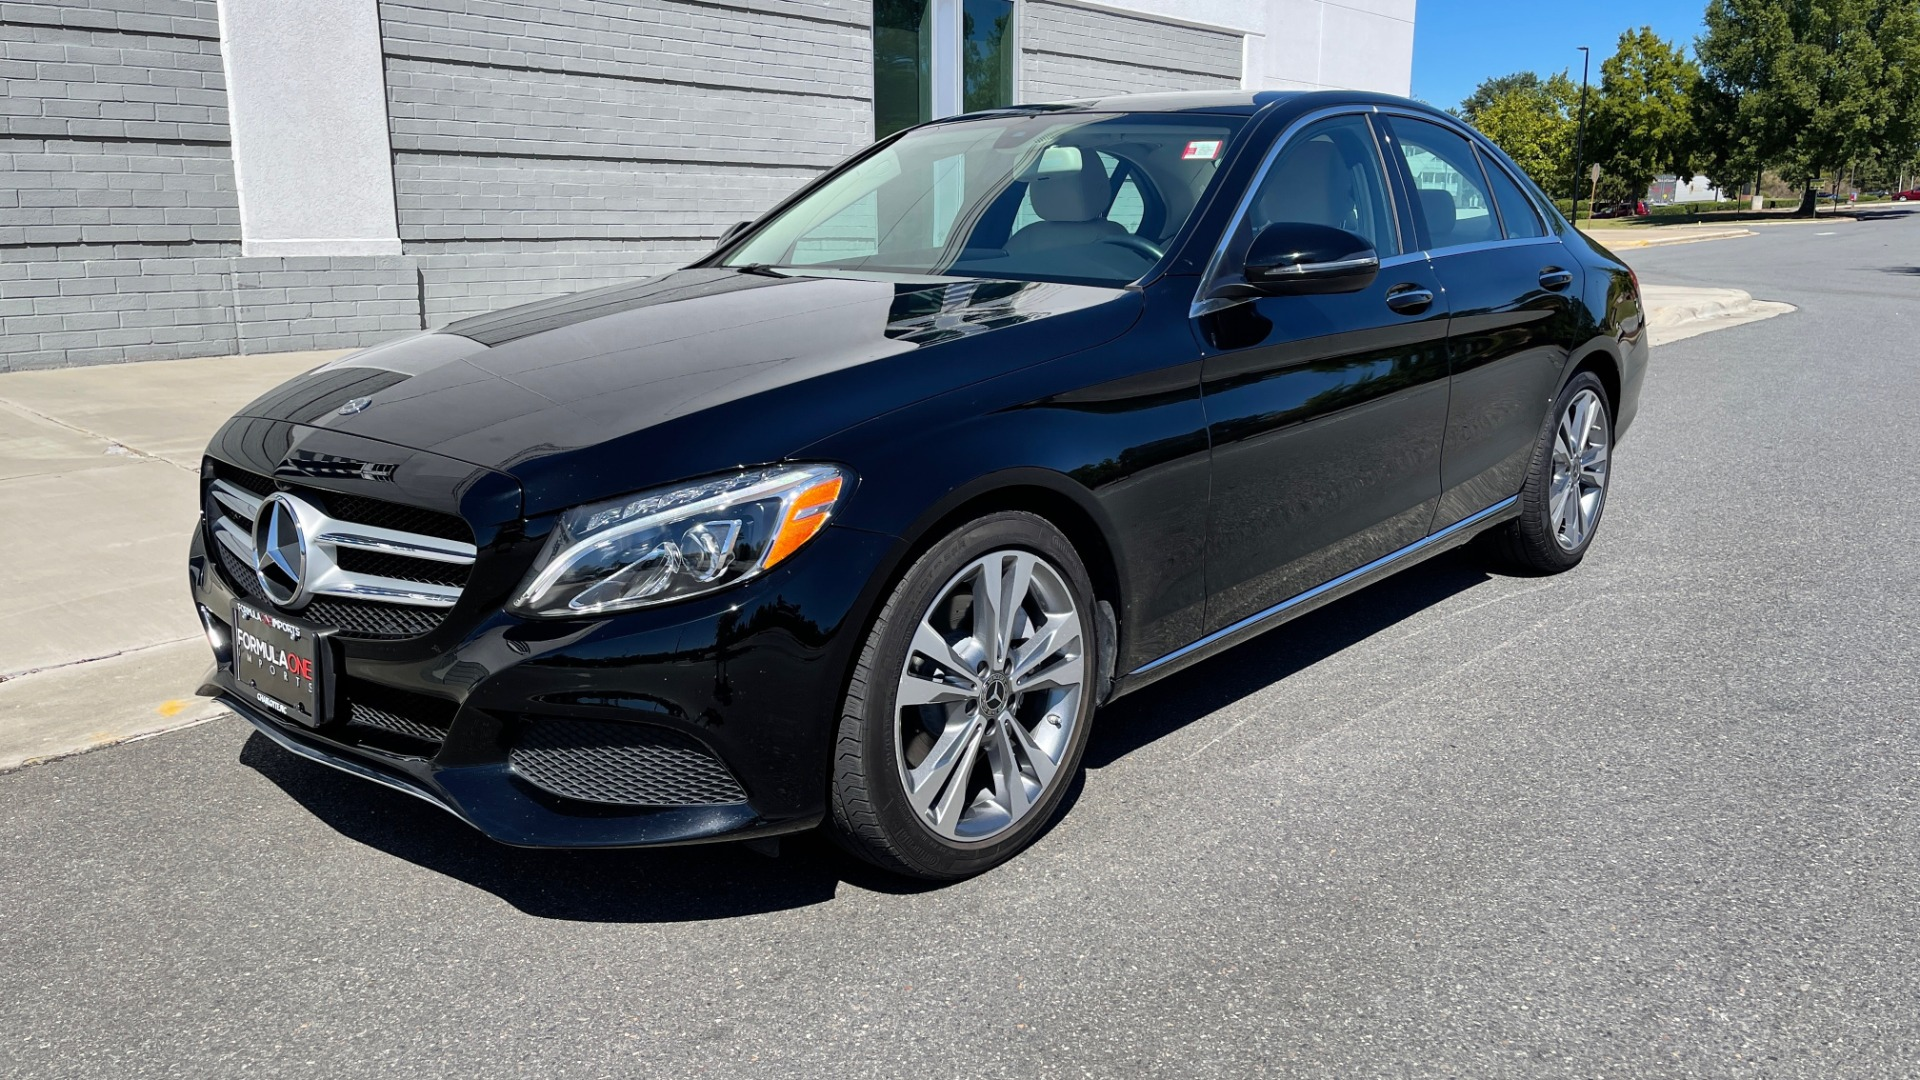 Used 2018 Mercedes-Benz C-CLASS C 300 PREMIUM / APPLE CARPLAY / SUNROOF / REARVIEW for sale $31,995 at Formula Imports in Charlotte NC 28227 3